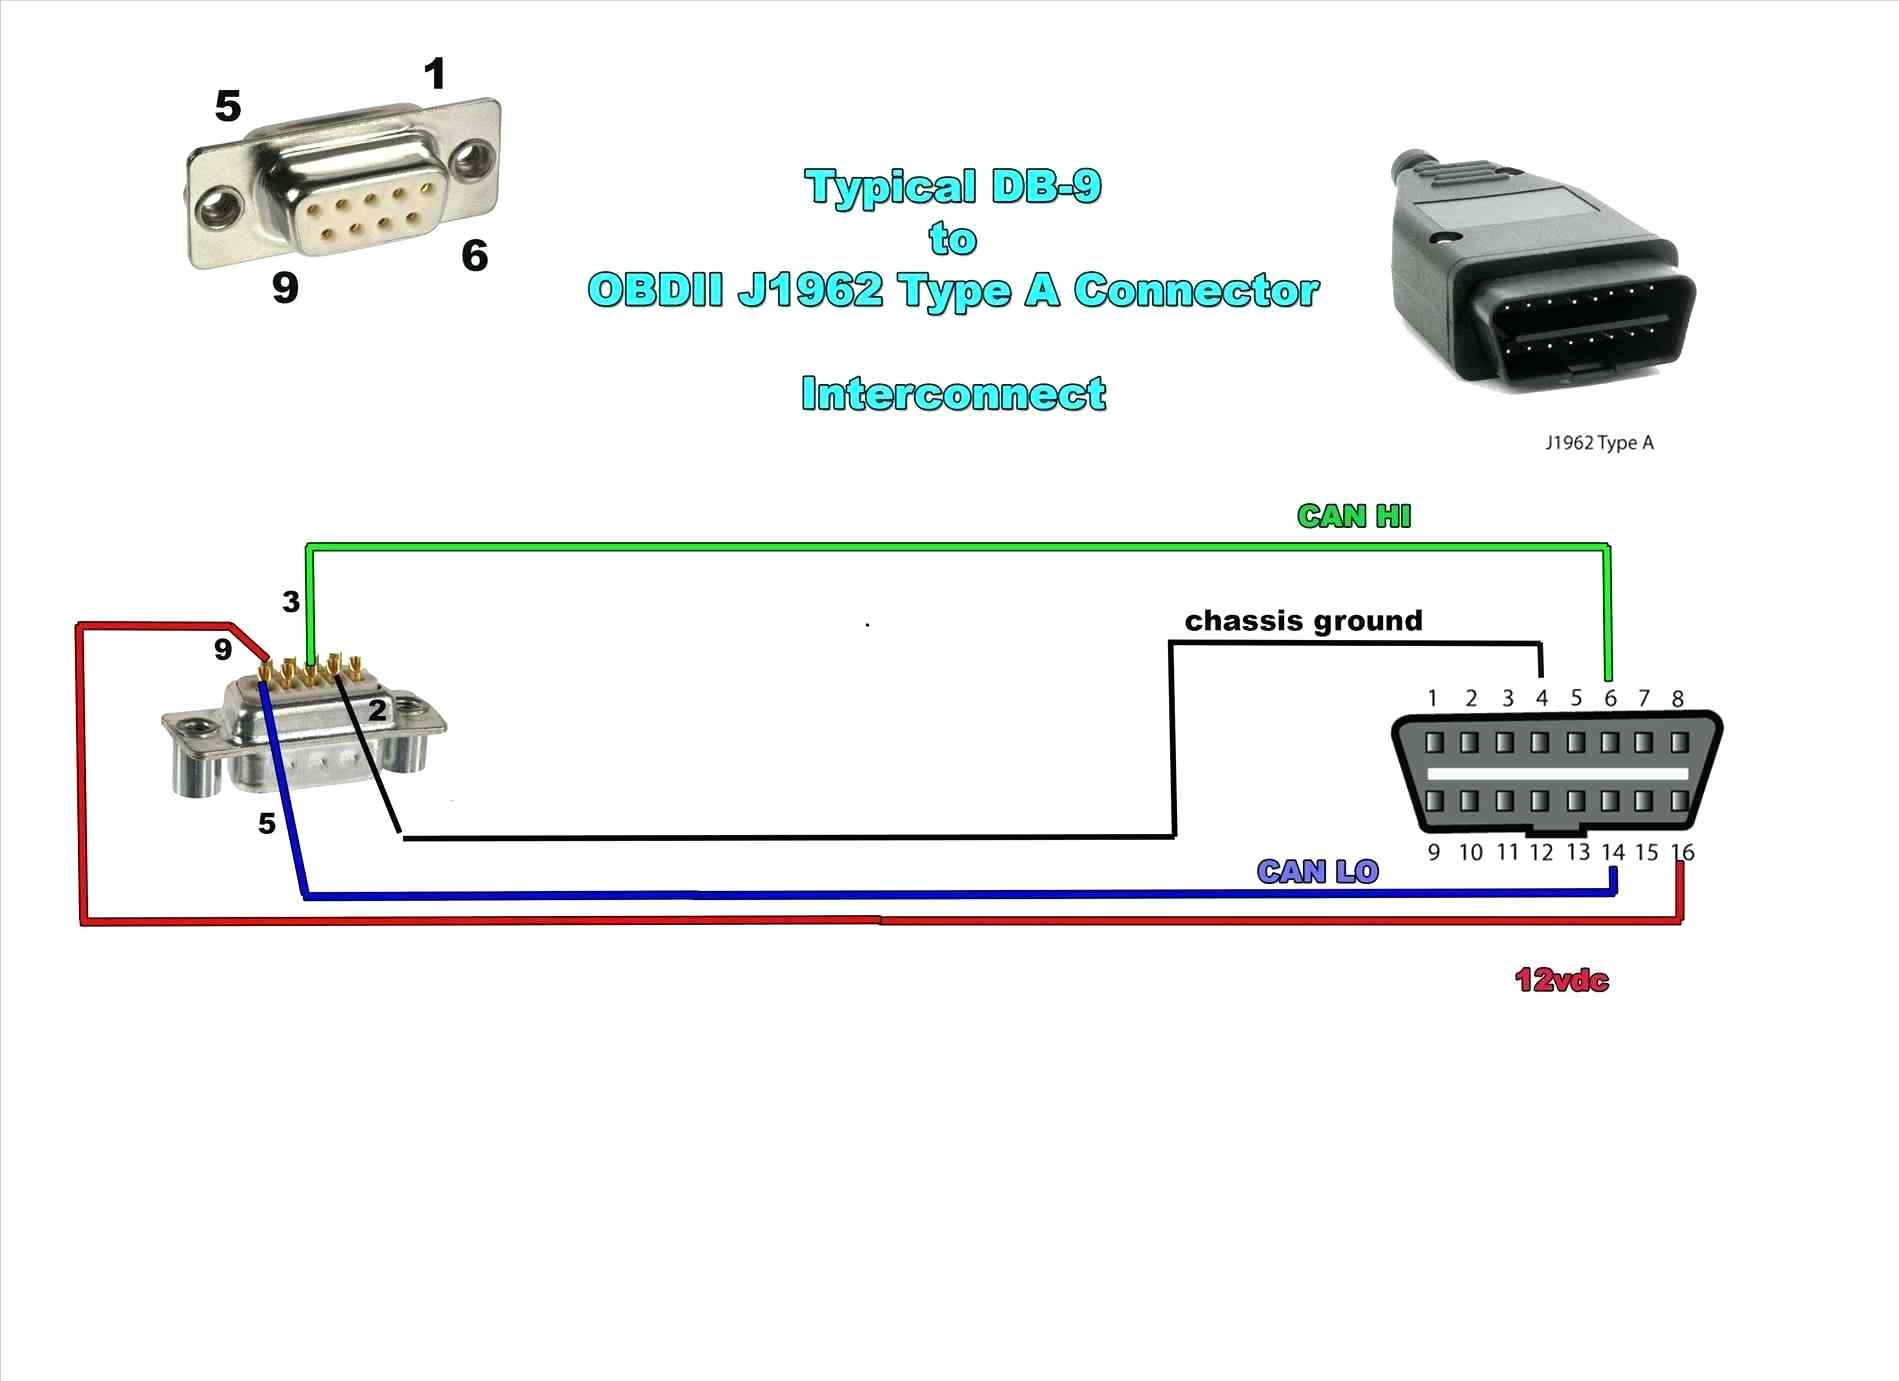 Hdmi To Rca Cable Wiring Diagram - Wellread - Hdmi To Rca Cable Wiring Diagram